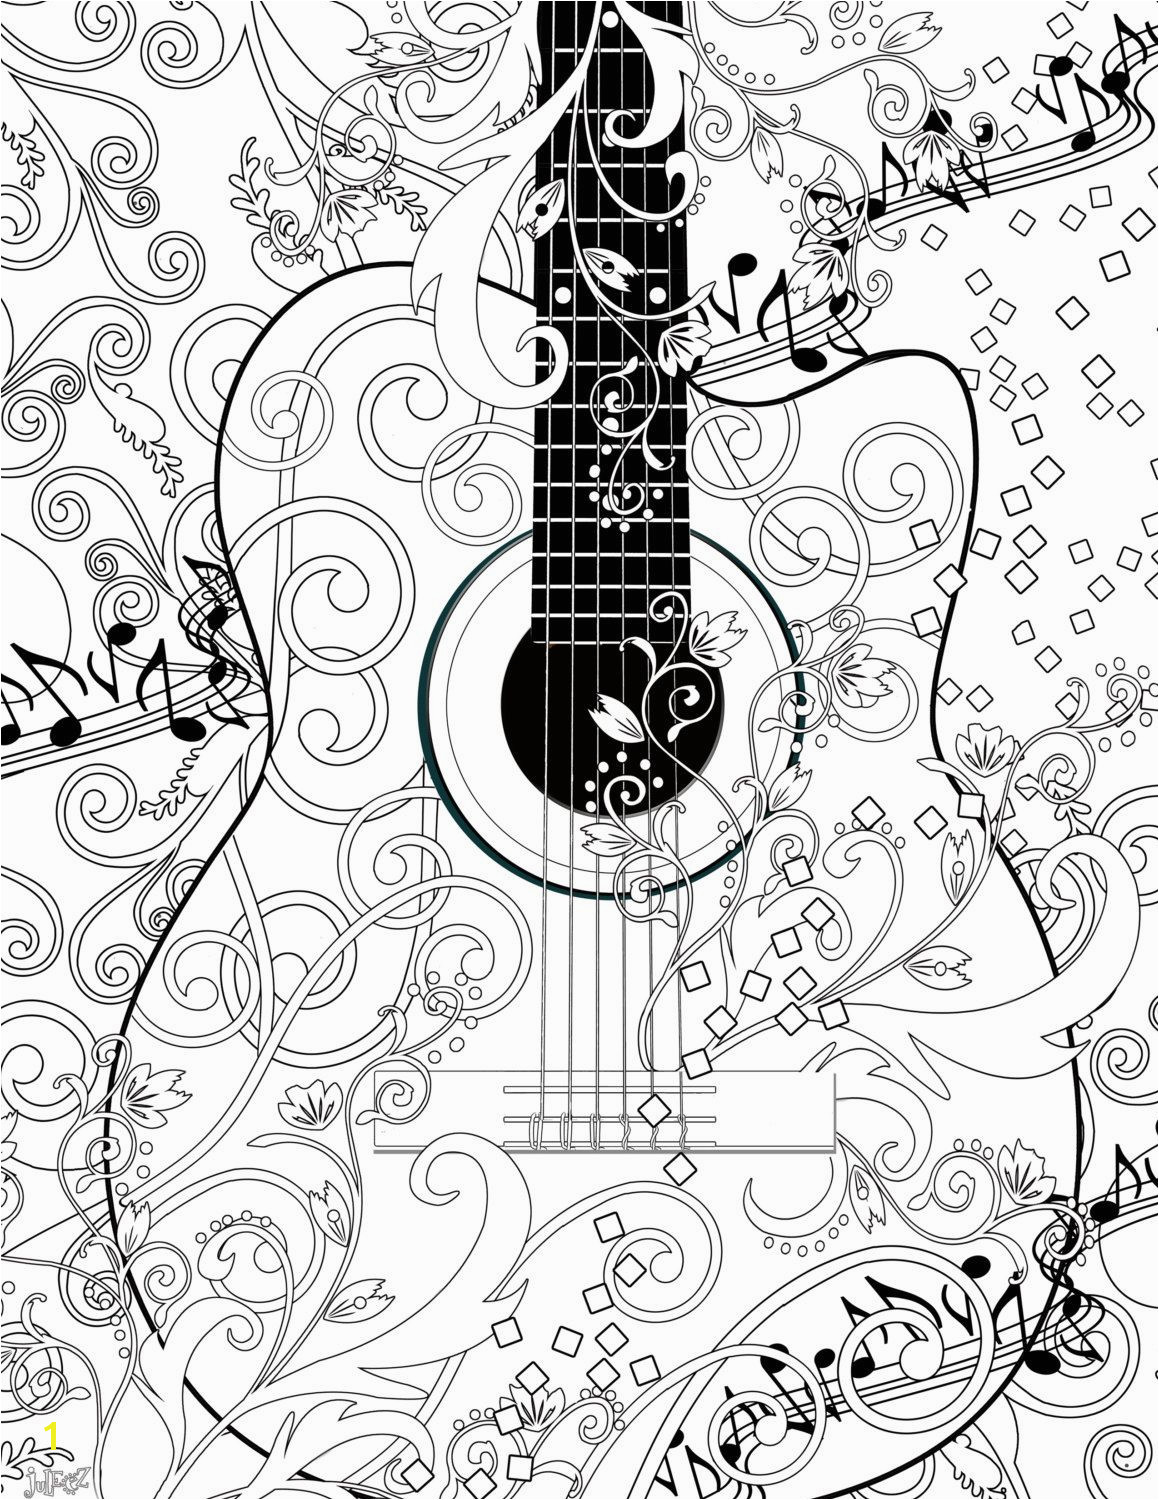 Guitar Player Coloring Page Coloring Poster Printable Music Coloring Poster Instant Download